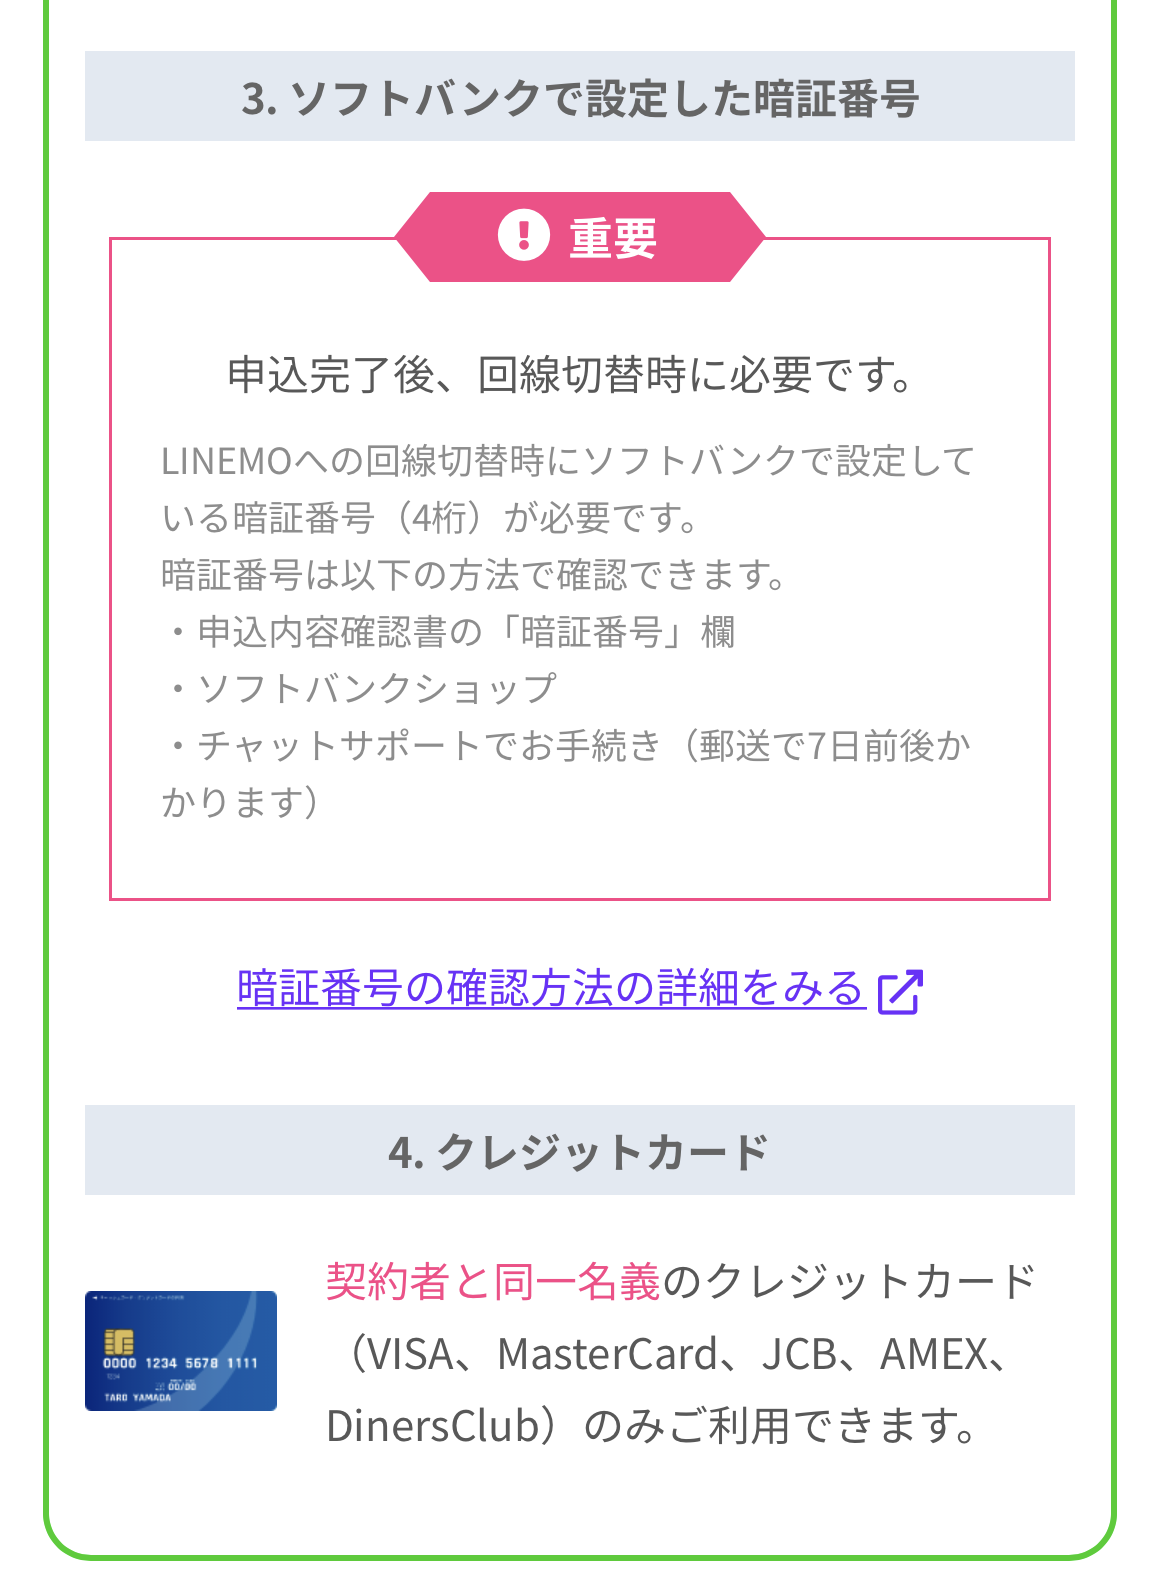 linemo9